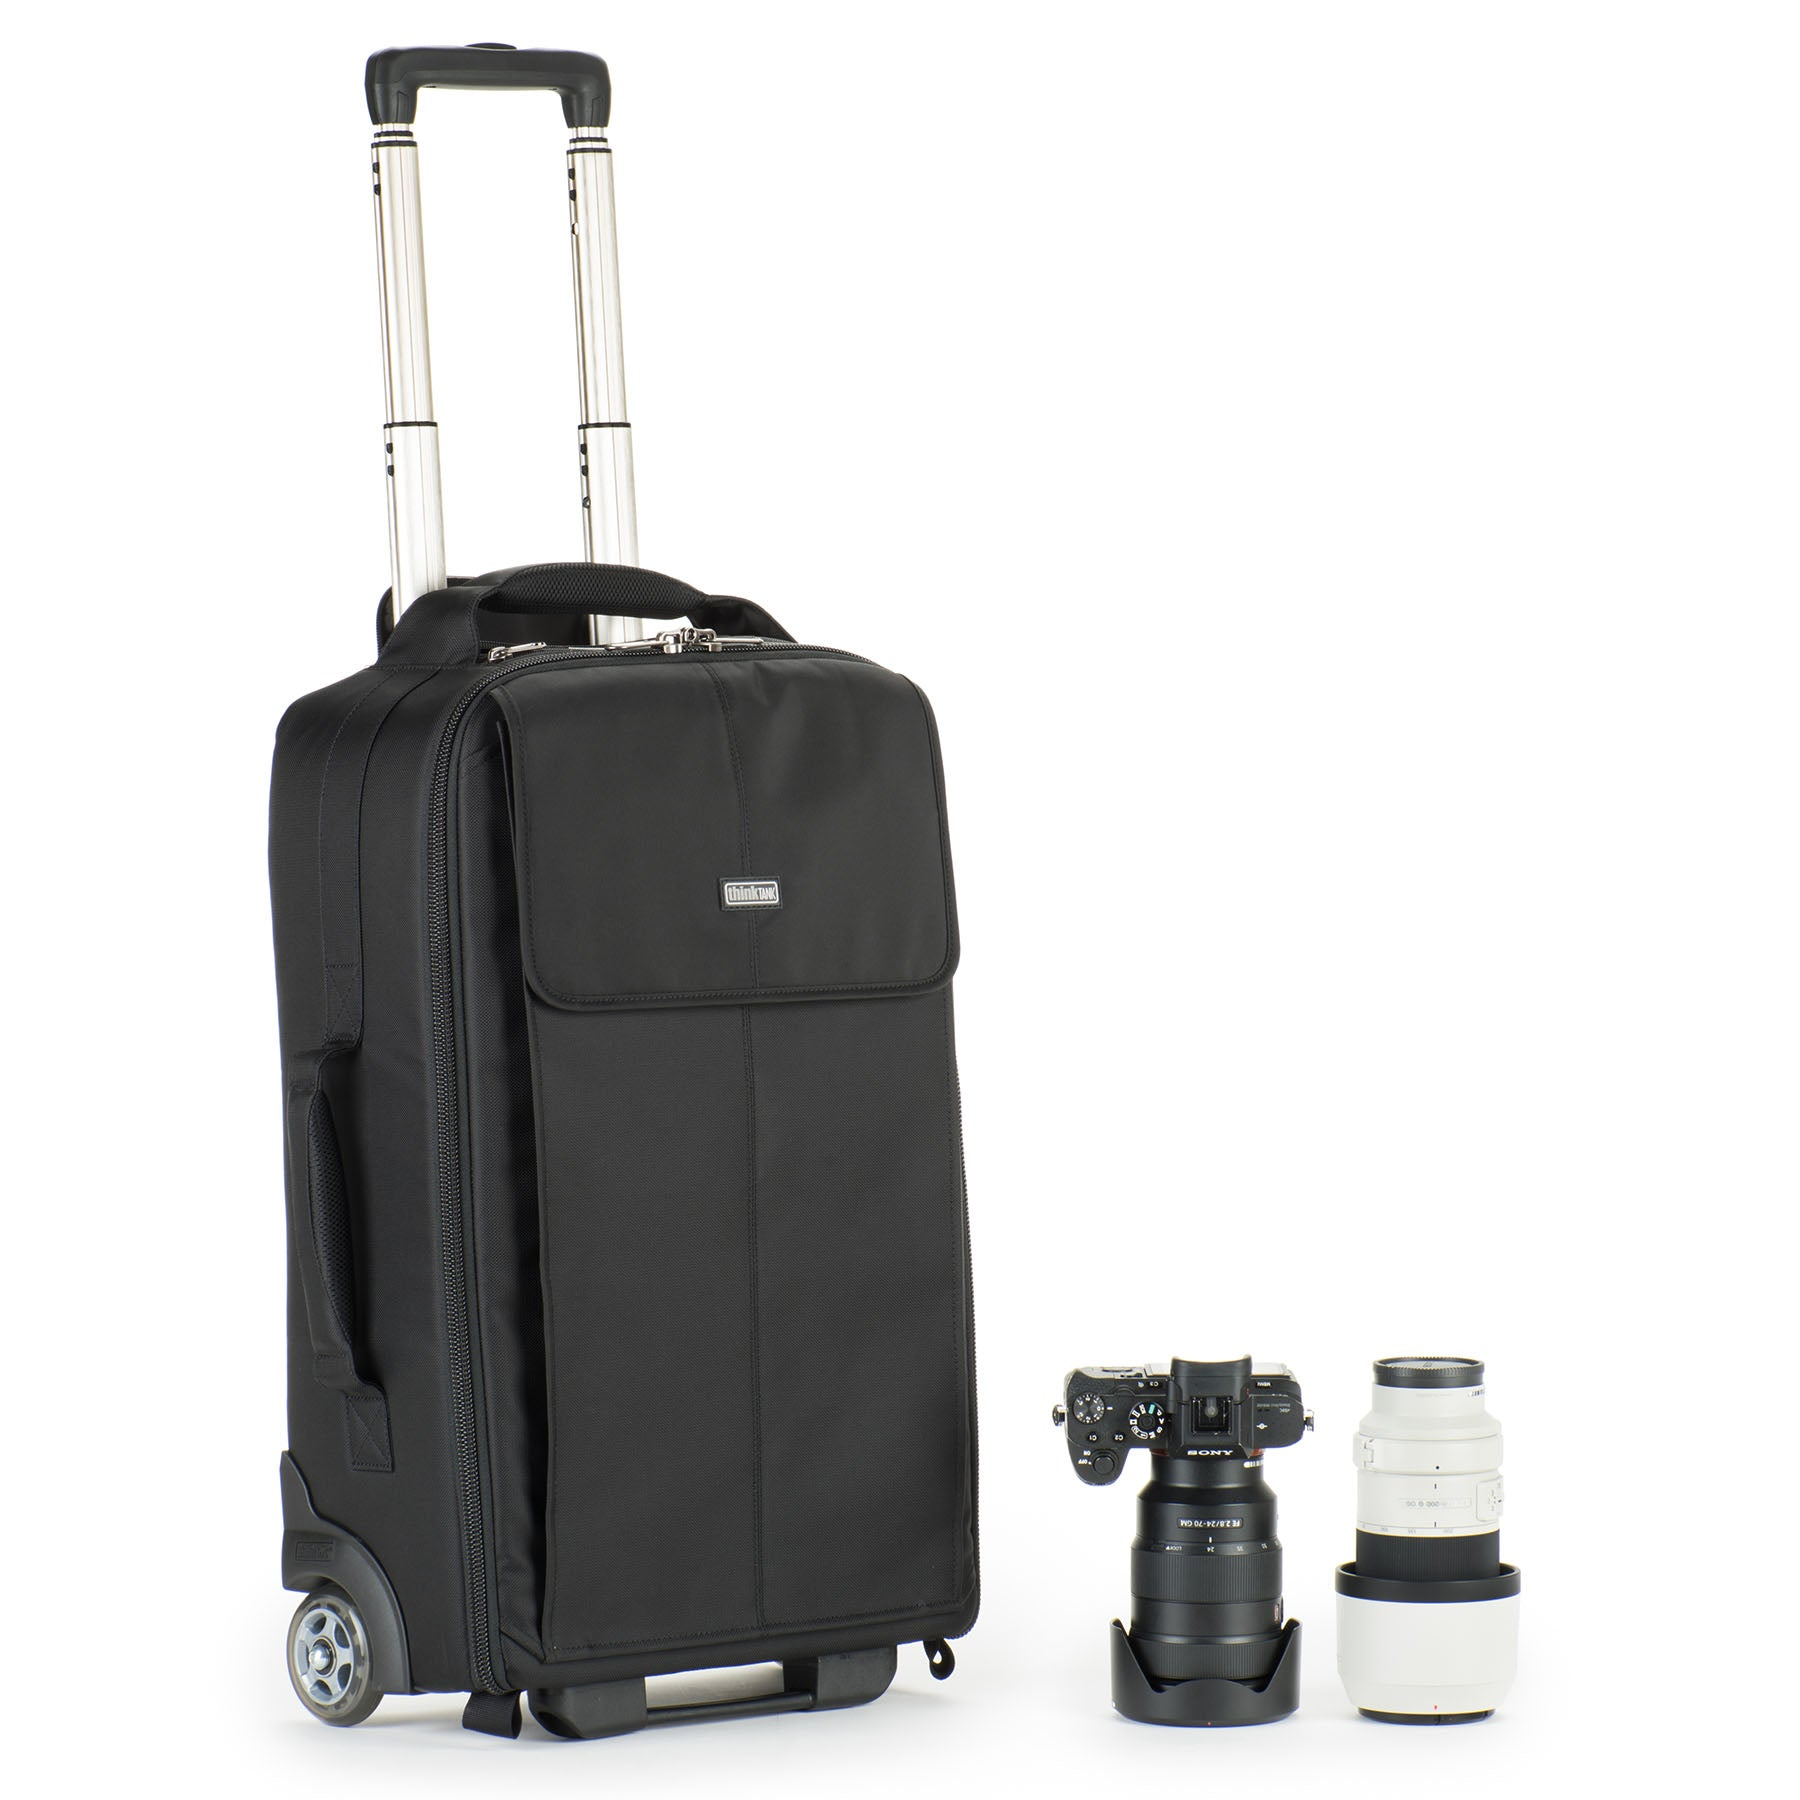 Airport Advantage Plus Rolling Camera Case